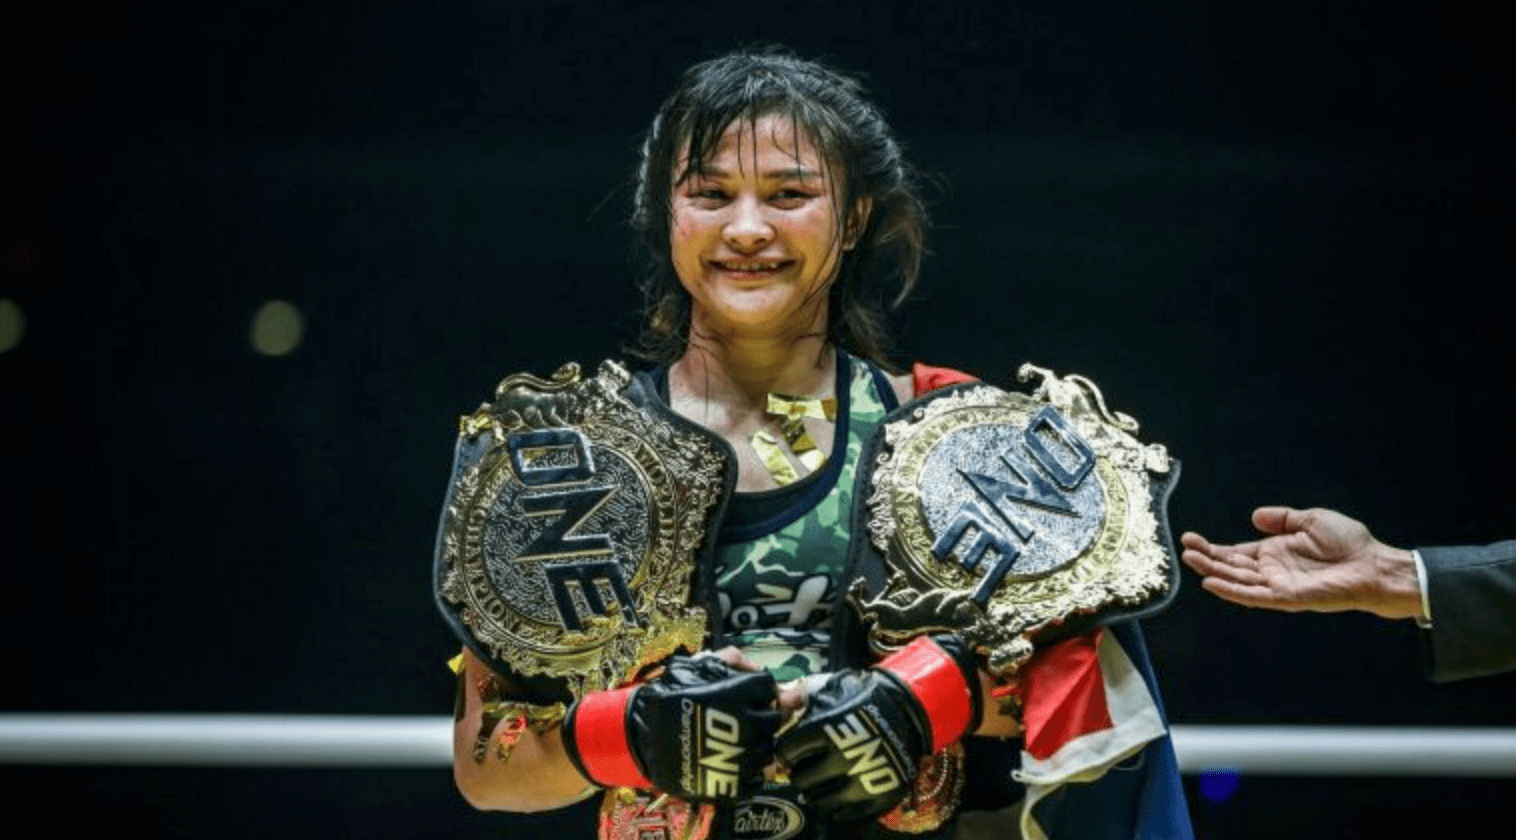 Stamp Fairtex Will Make Her MMA Debut In 2019 & Is Coming For The Belt